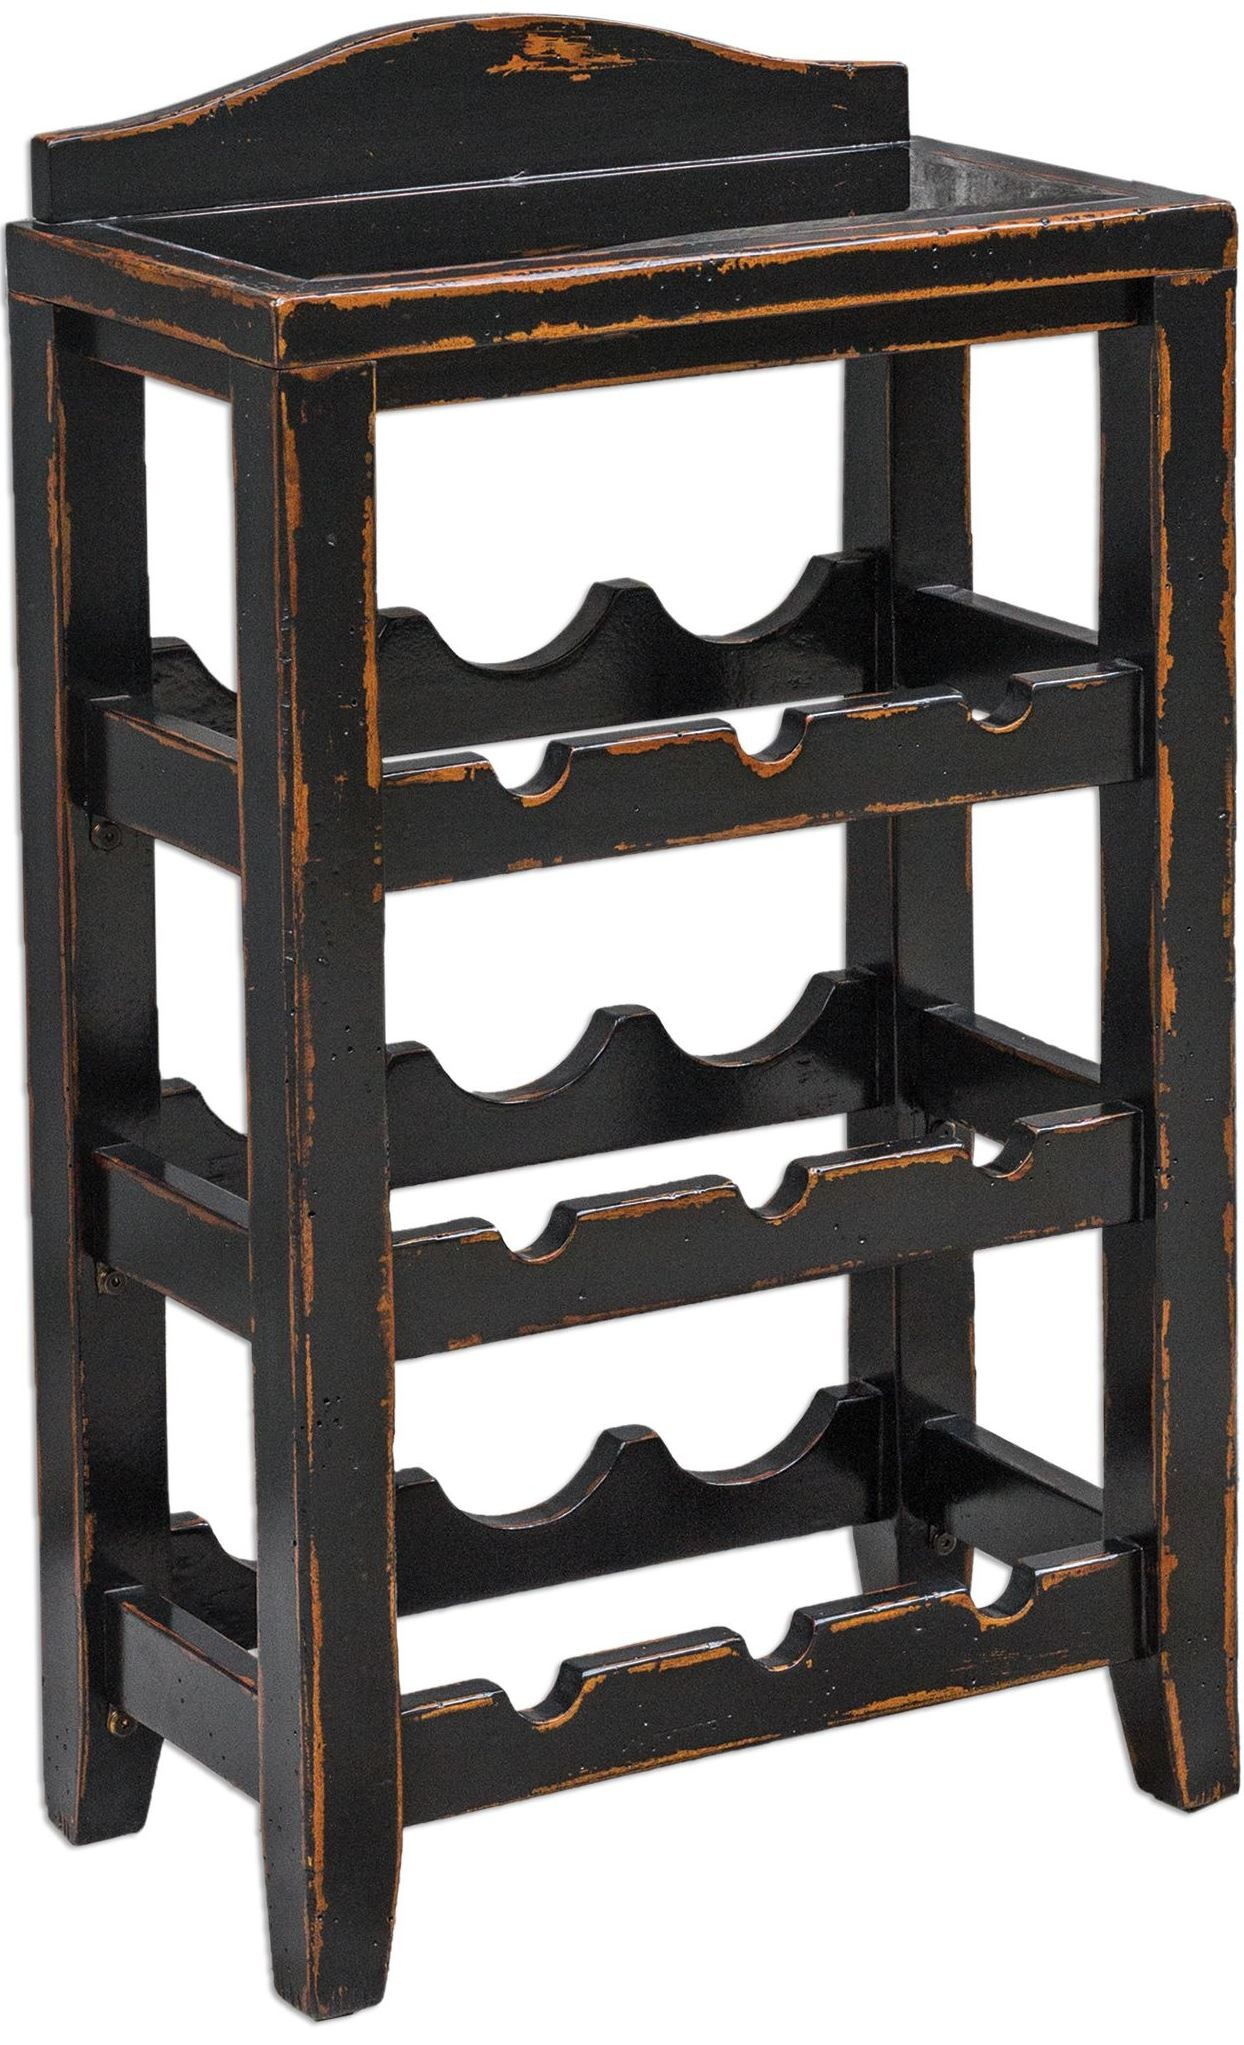 Halton Wine Rack Table From Uttermost 25672 Coleman